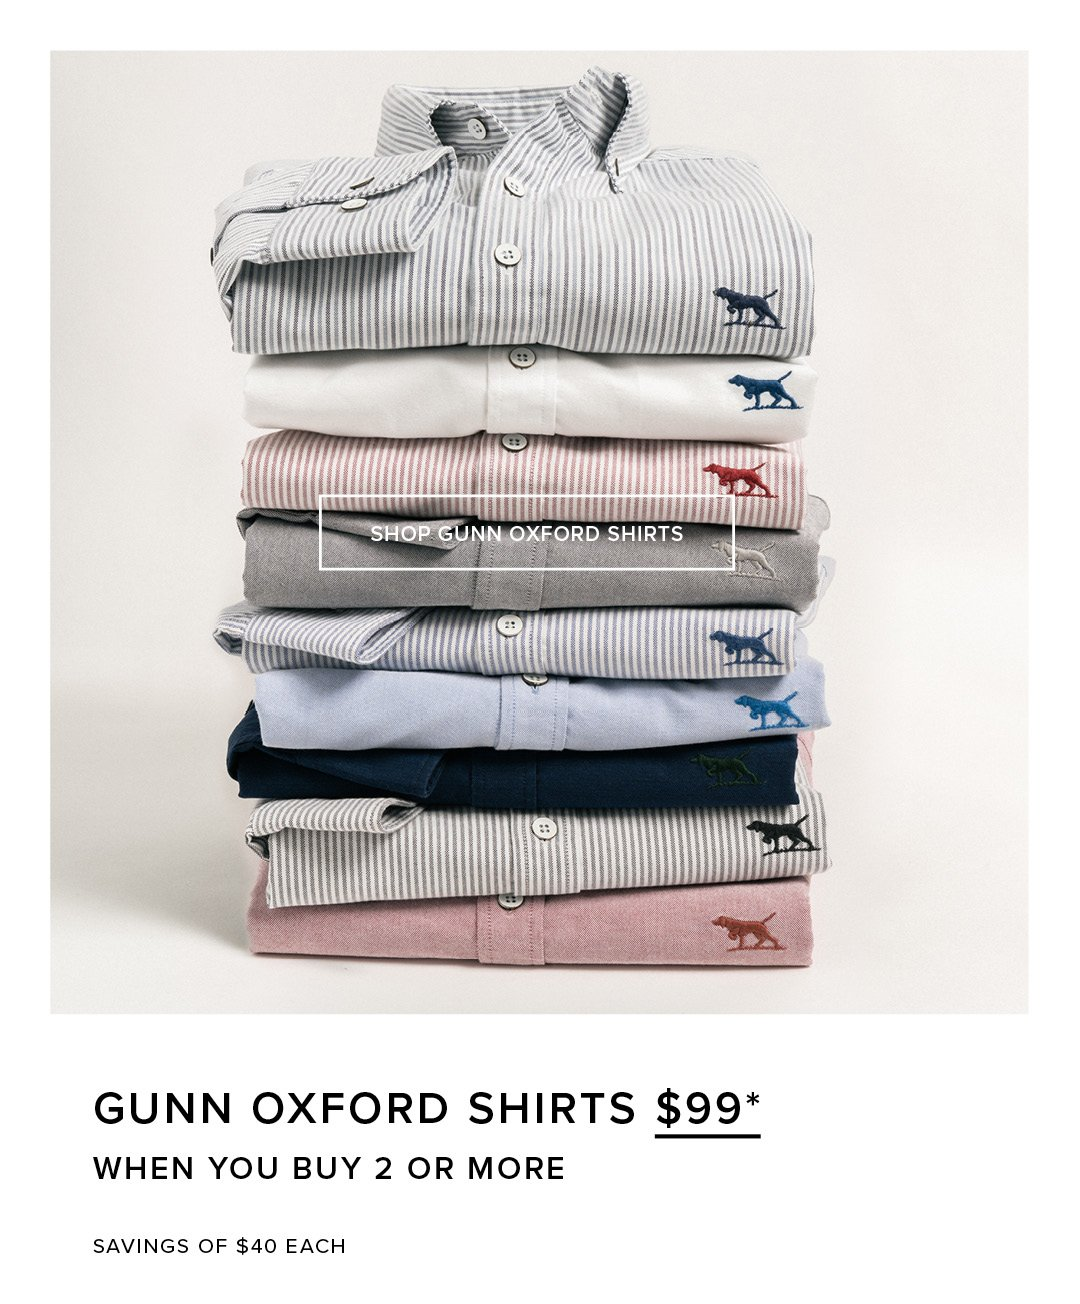 Gunn Oxford Shirts- $99* When You Buy 2 Or More